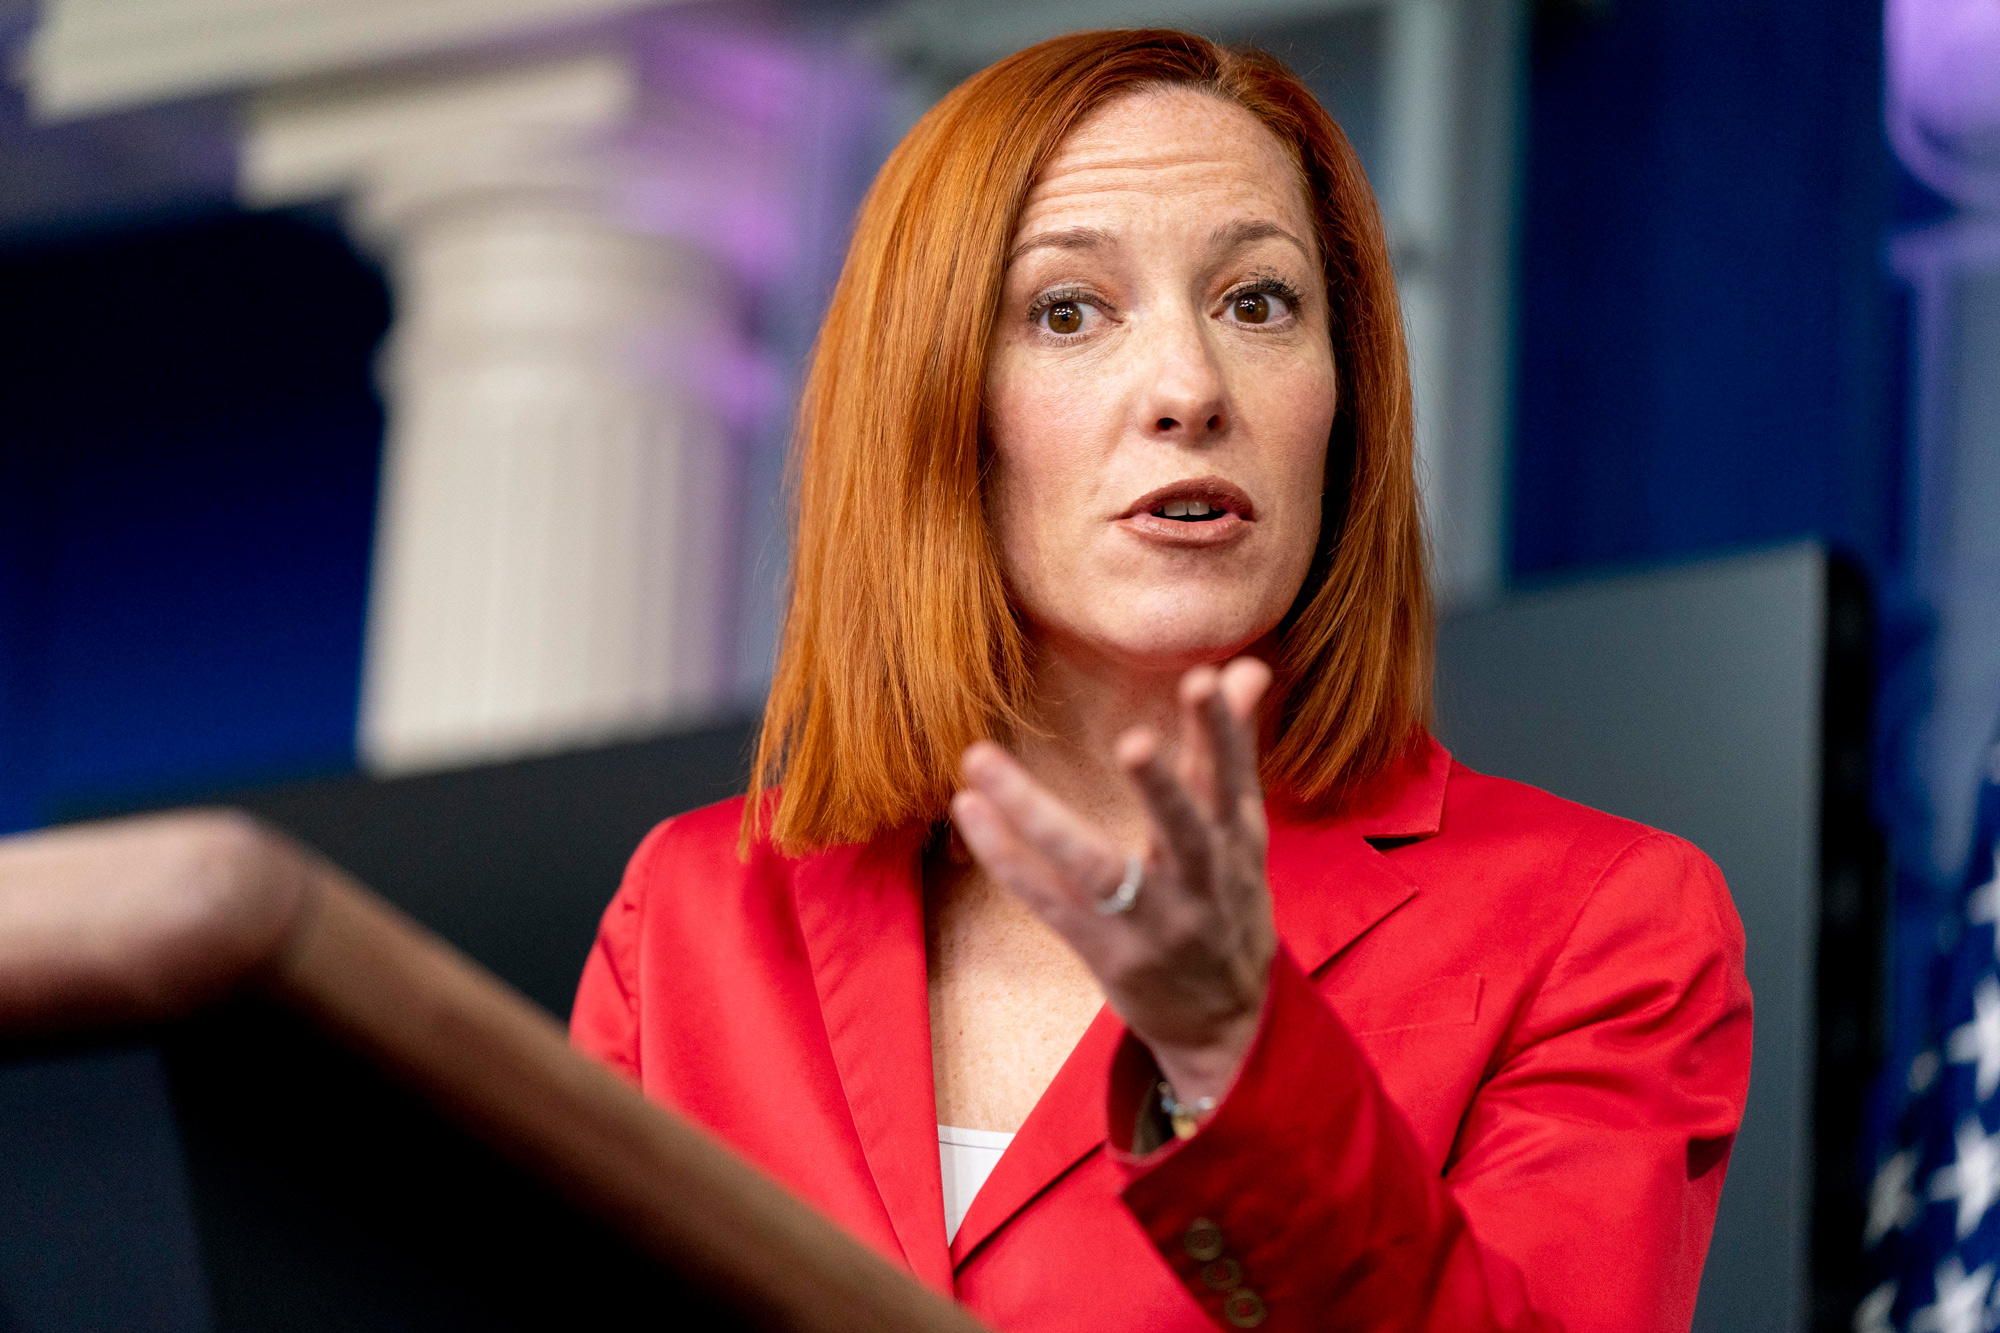 White House press secretary Jen Psaki speaks during a press briefing at the White House on March 11 in Washington, DC.